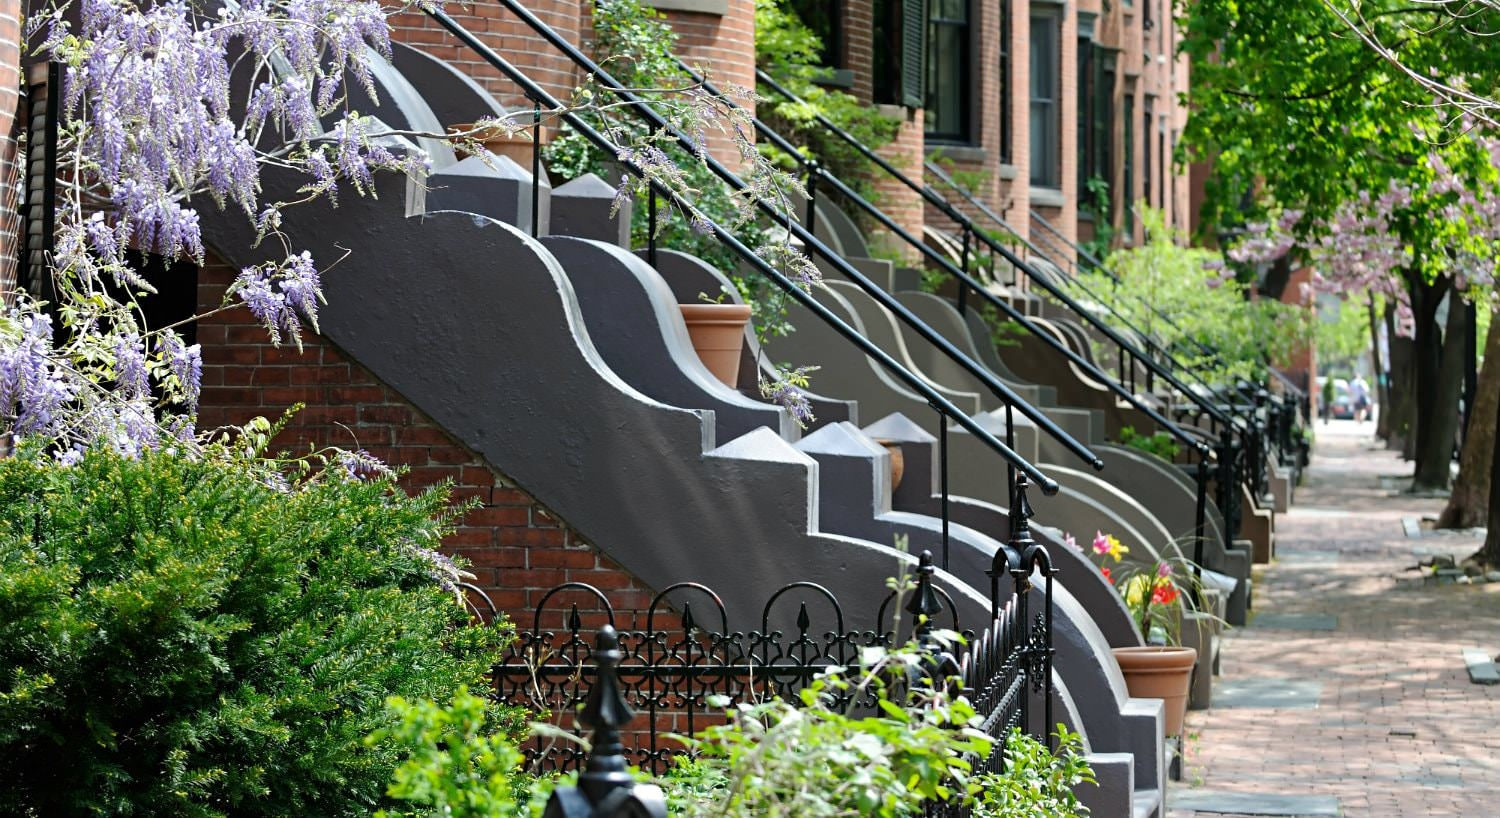 A row of decorative steps and railings leading up to brick brownstones